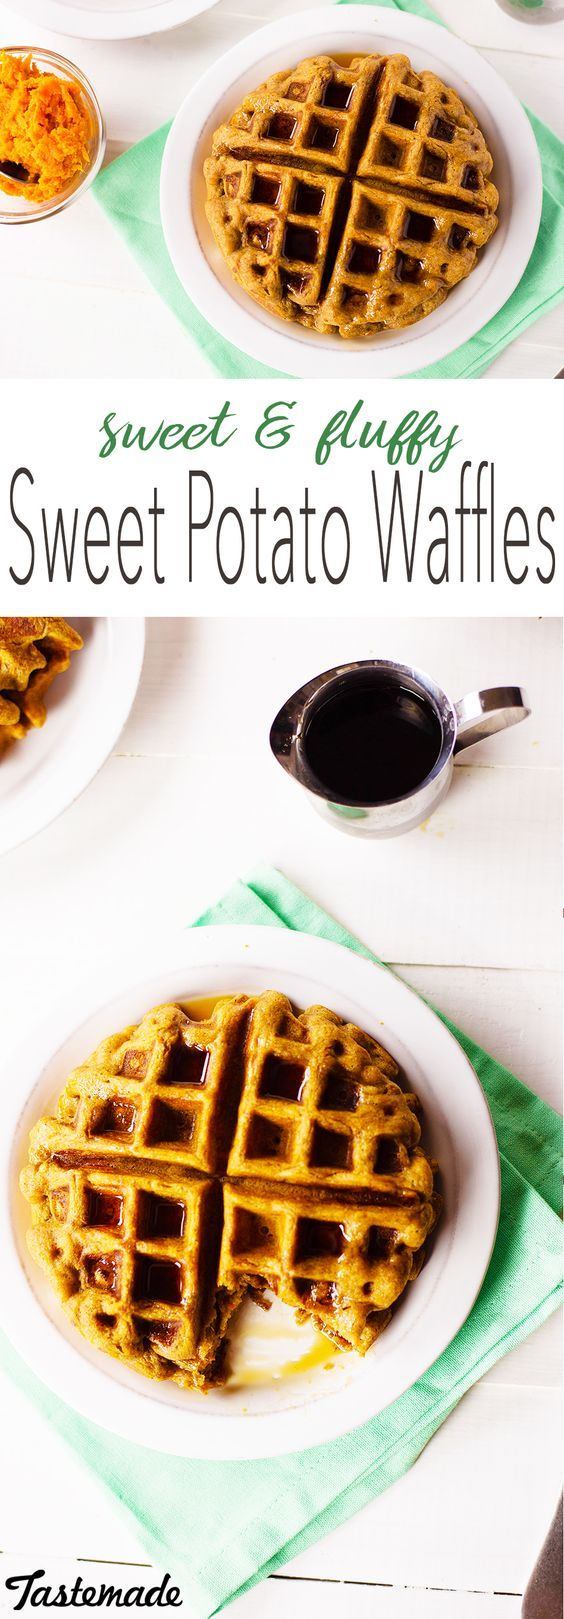 These guilt-free waffles offer a sweetness of their own so you won't miss all that syrup! No refined sugars or flours makes this breakfast a healthier choice